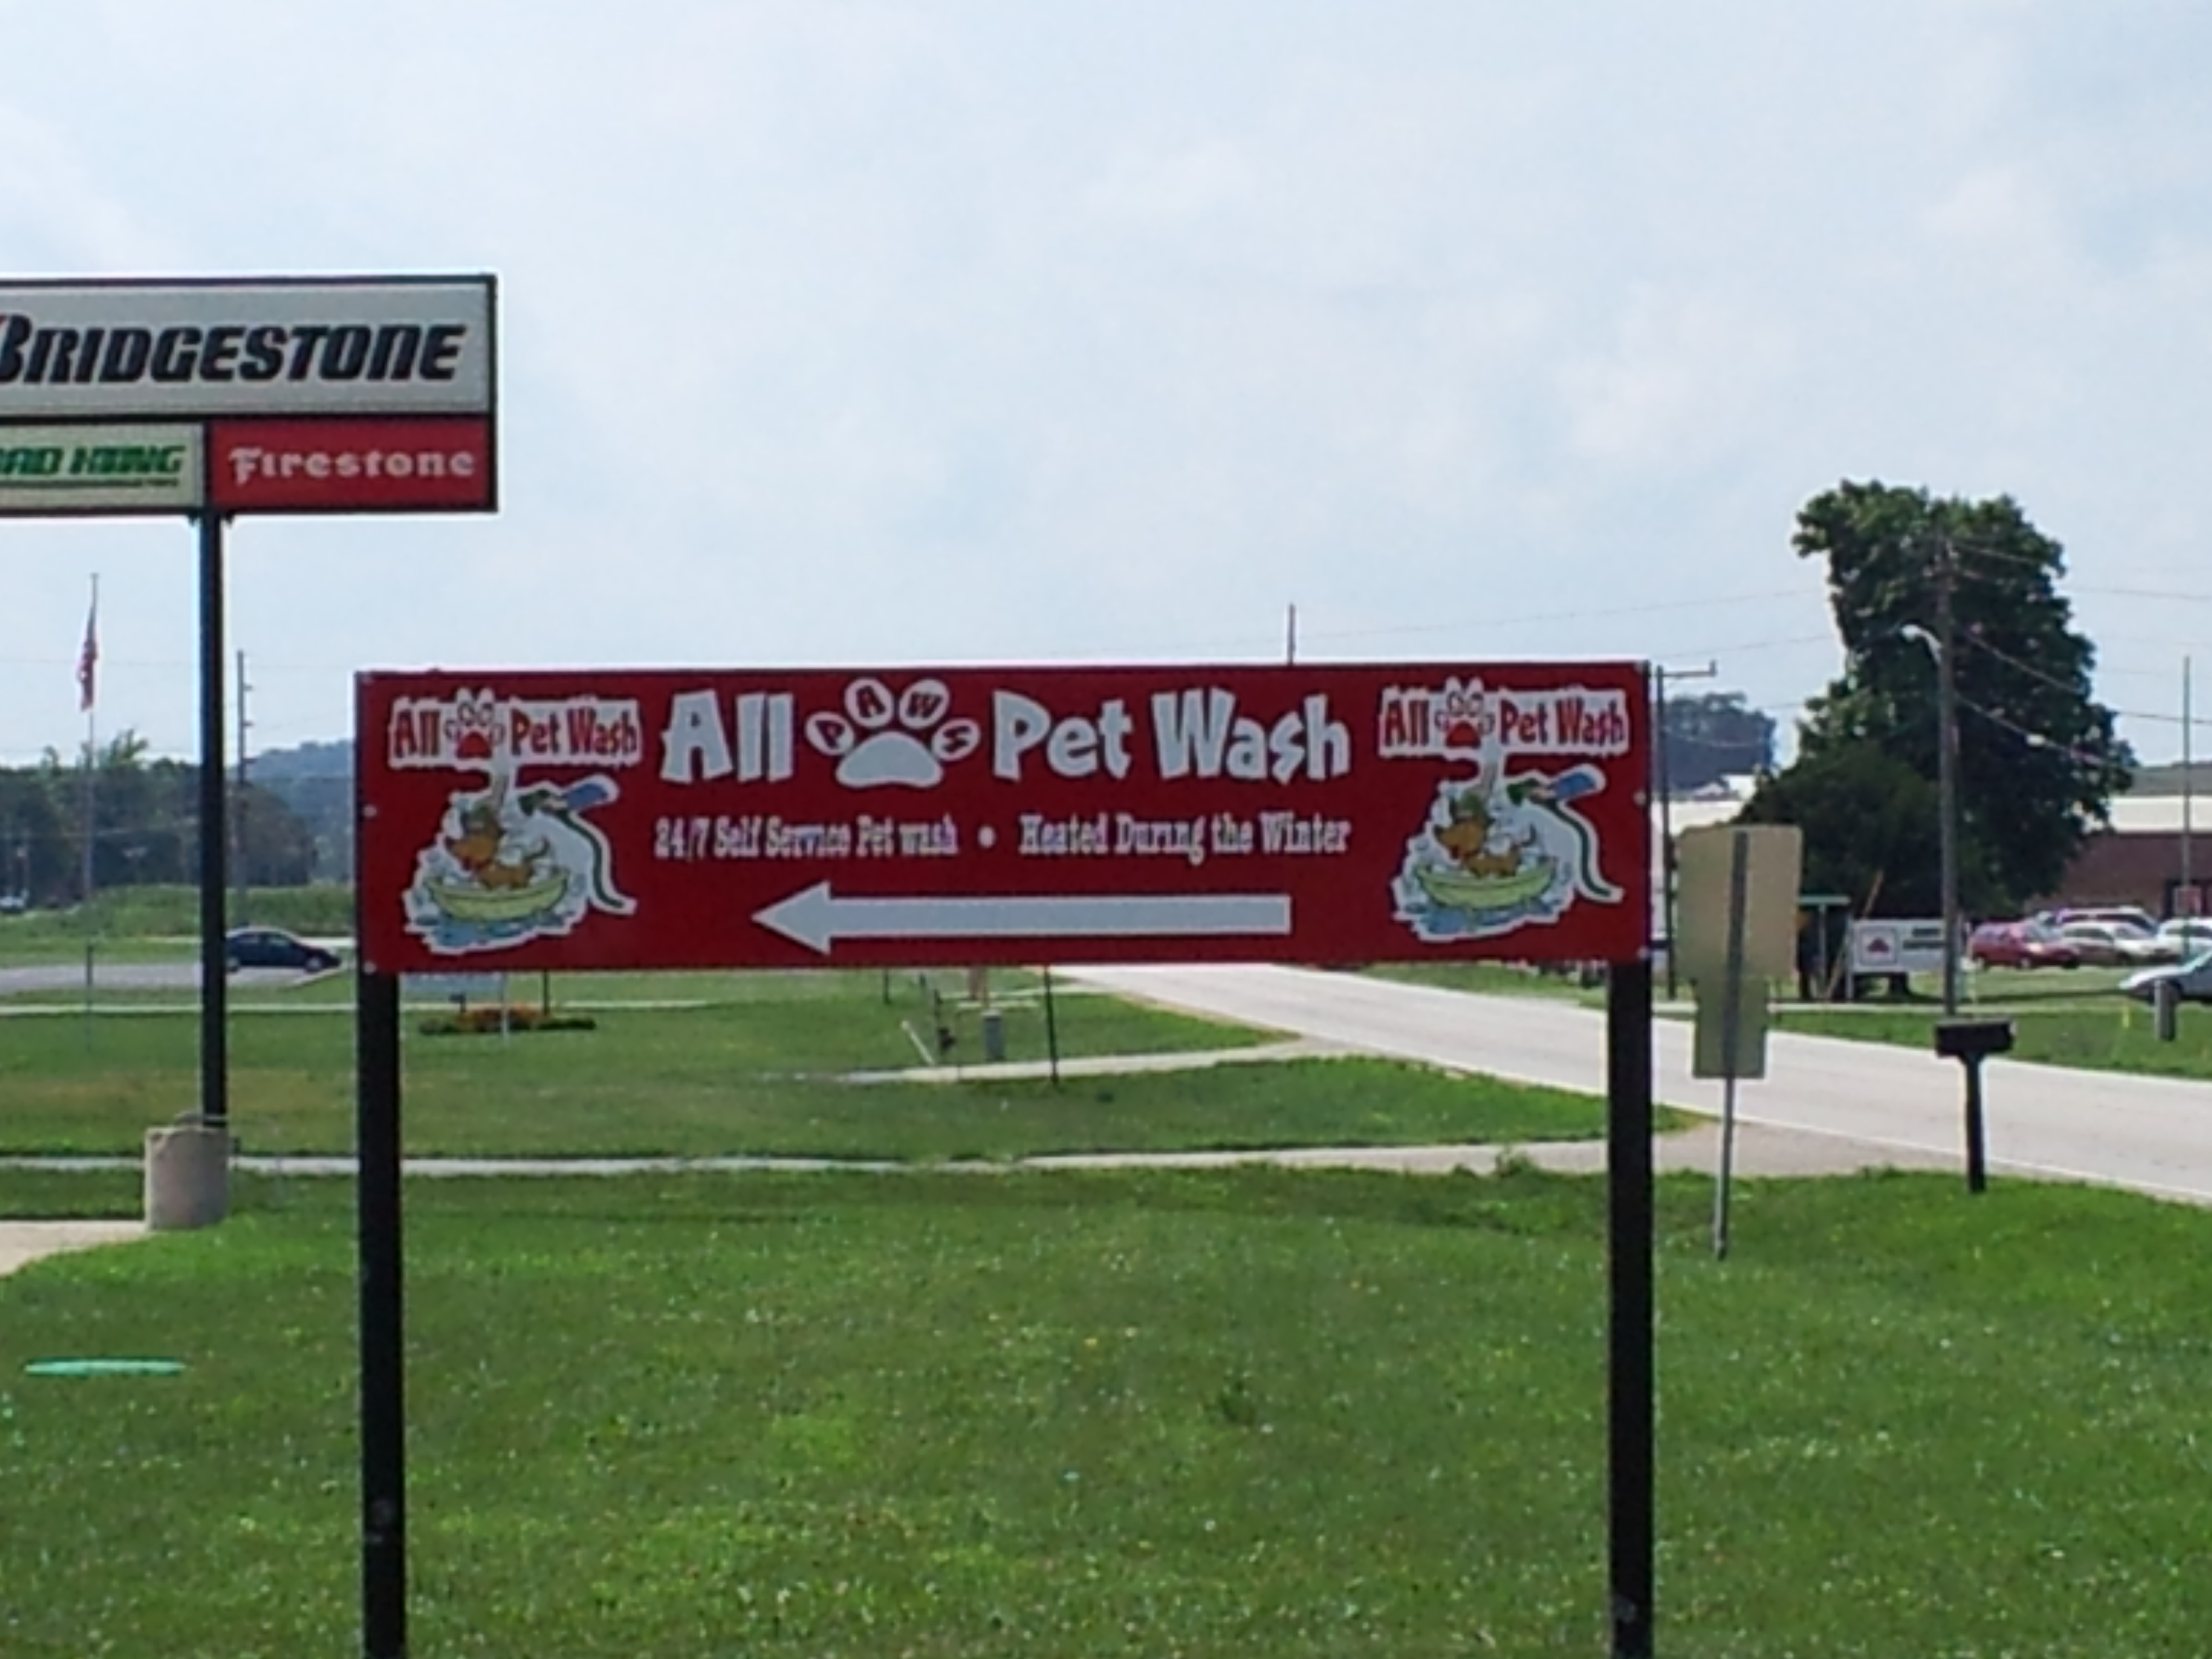 Car wash pet wash dog bath stations pet wash installations all all paws pet wash solutioingenieria